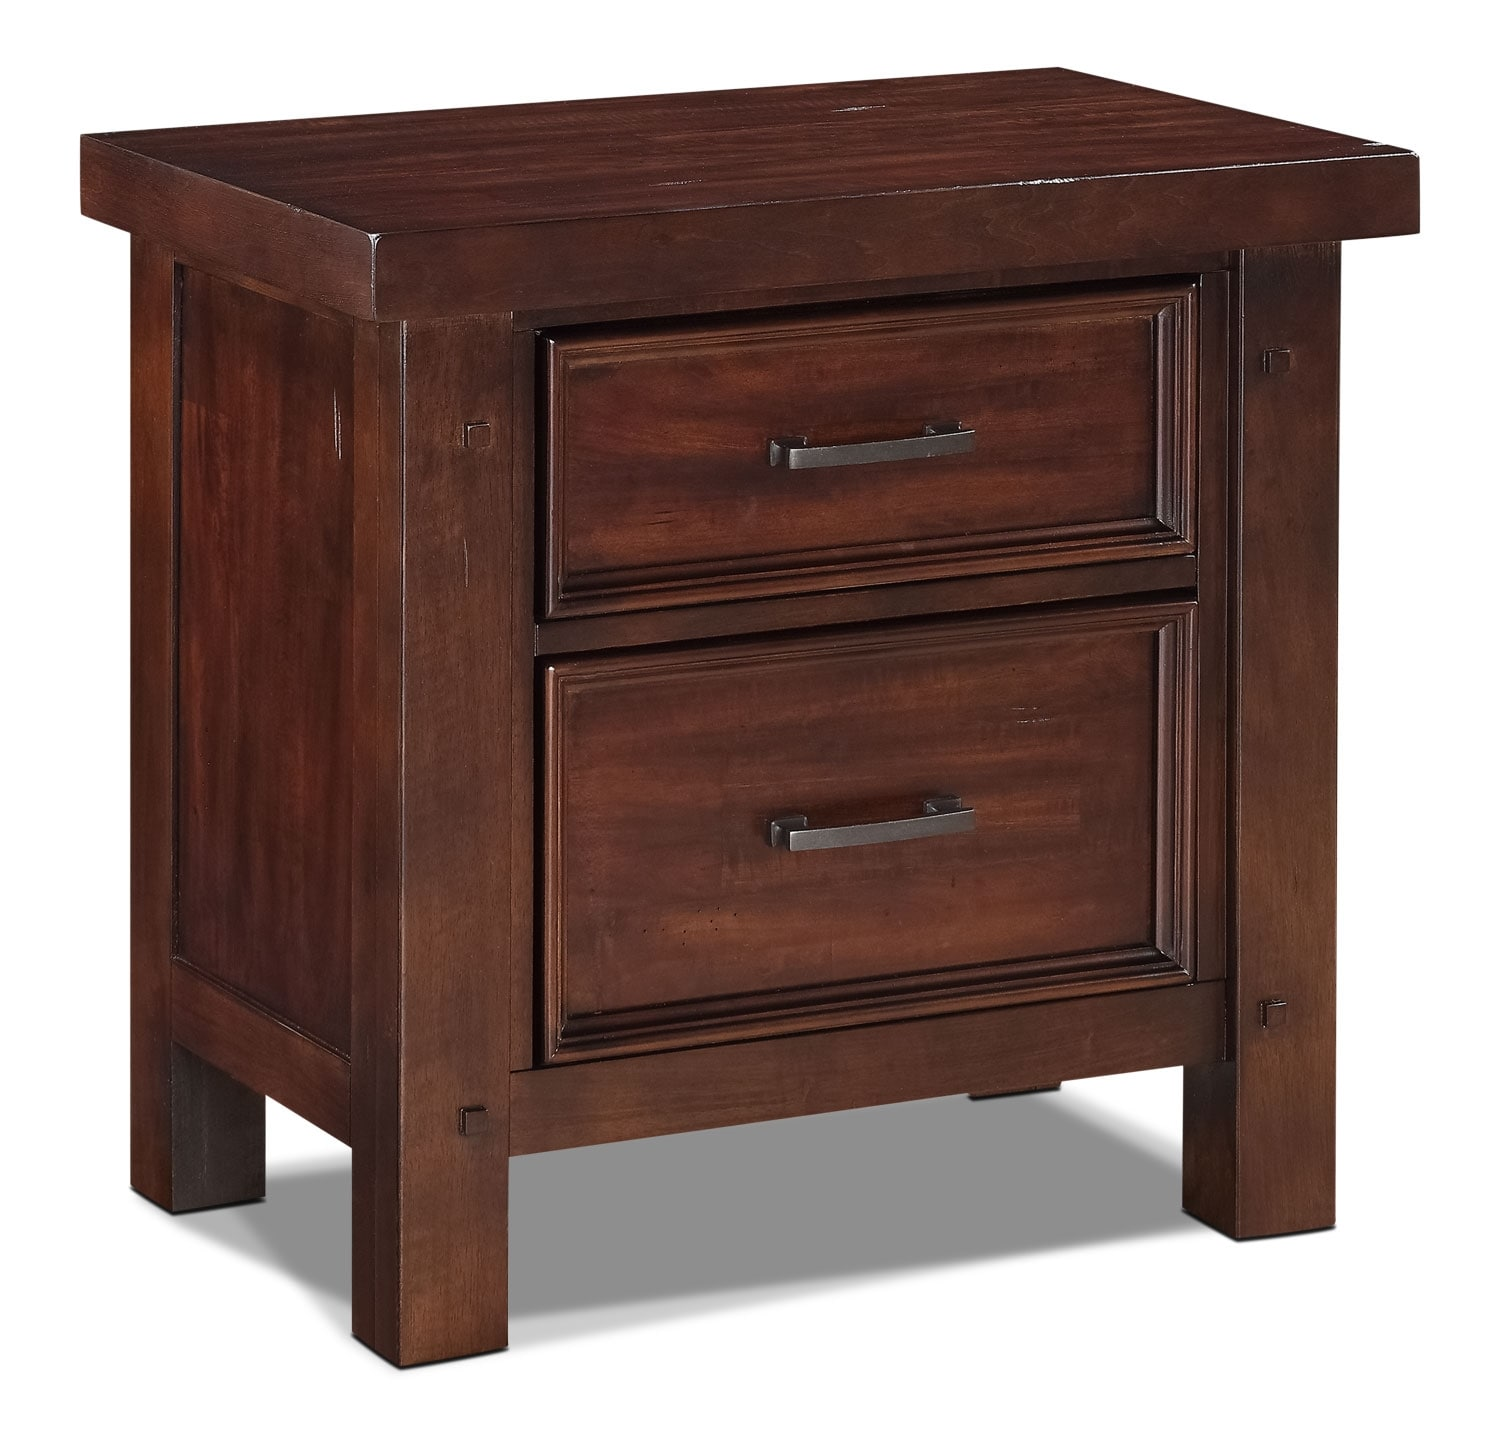 Sonoma Youth Nightstand